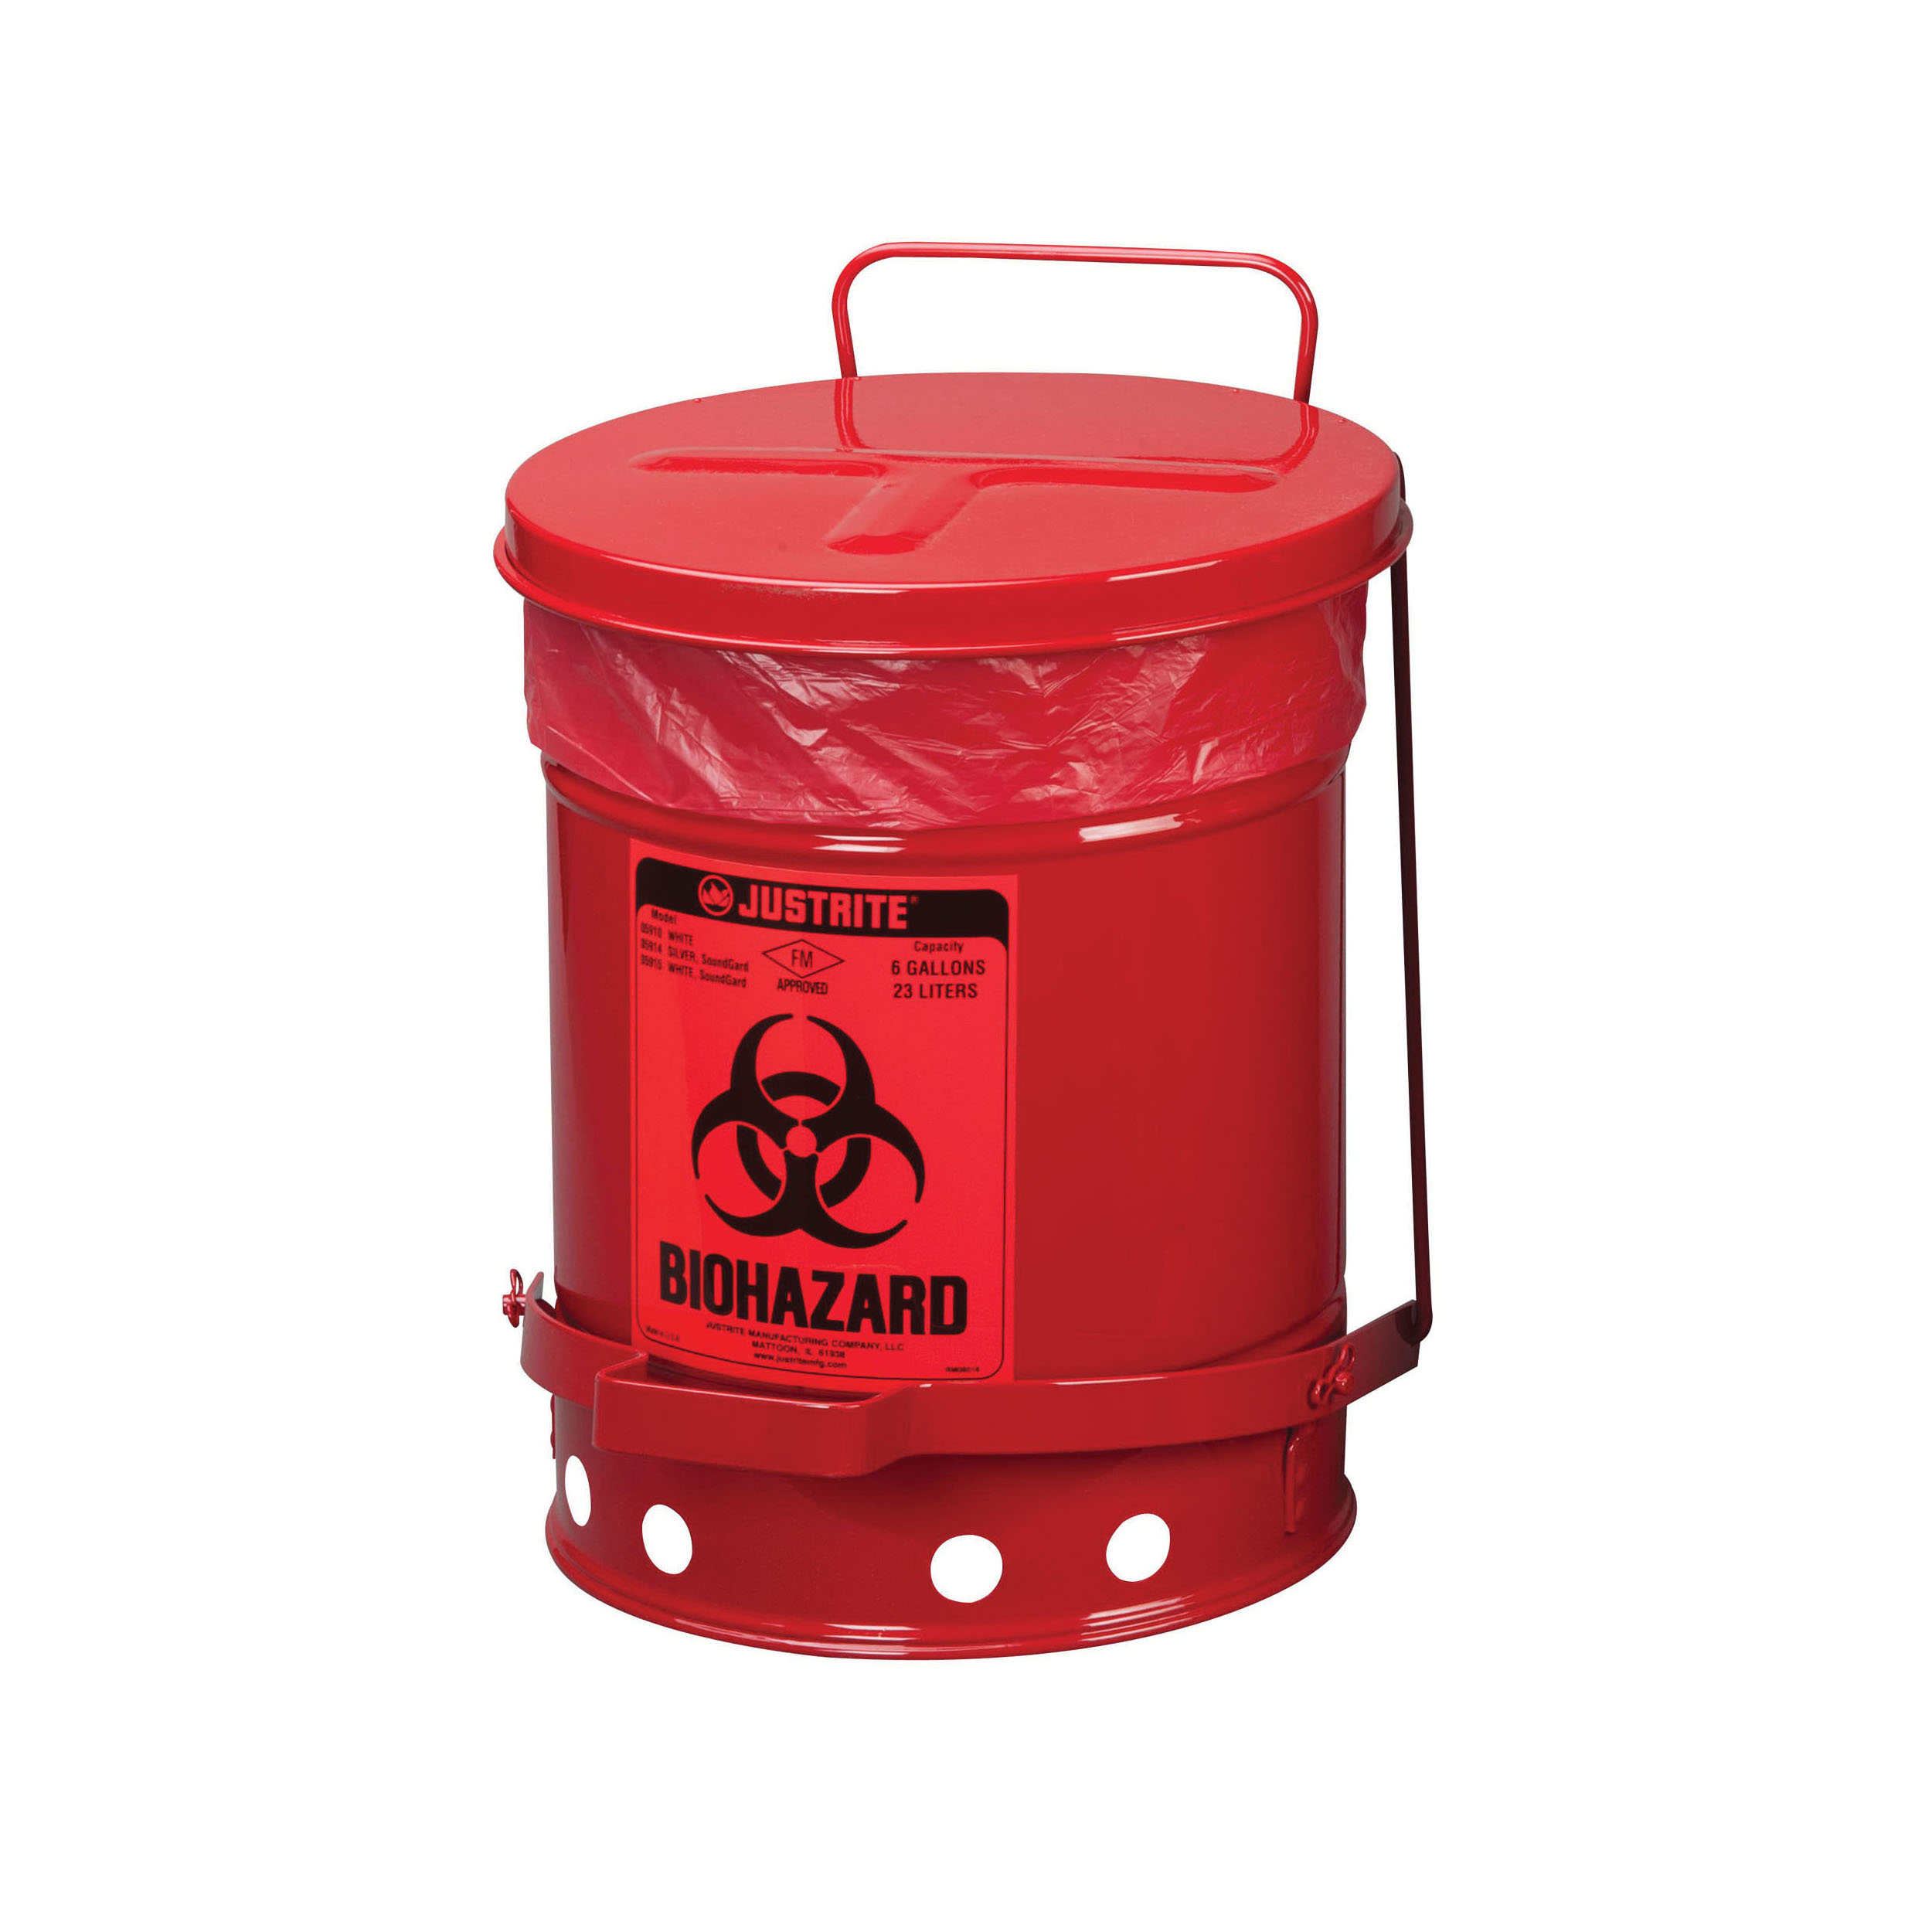 Justrite® 05901 Liner Bag, For Use With Biohazard Waste Cans, Plastic, Red